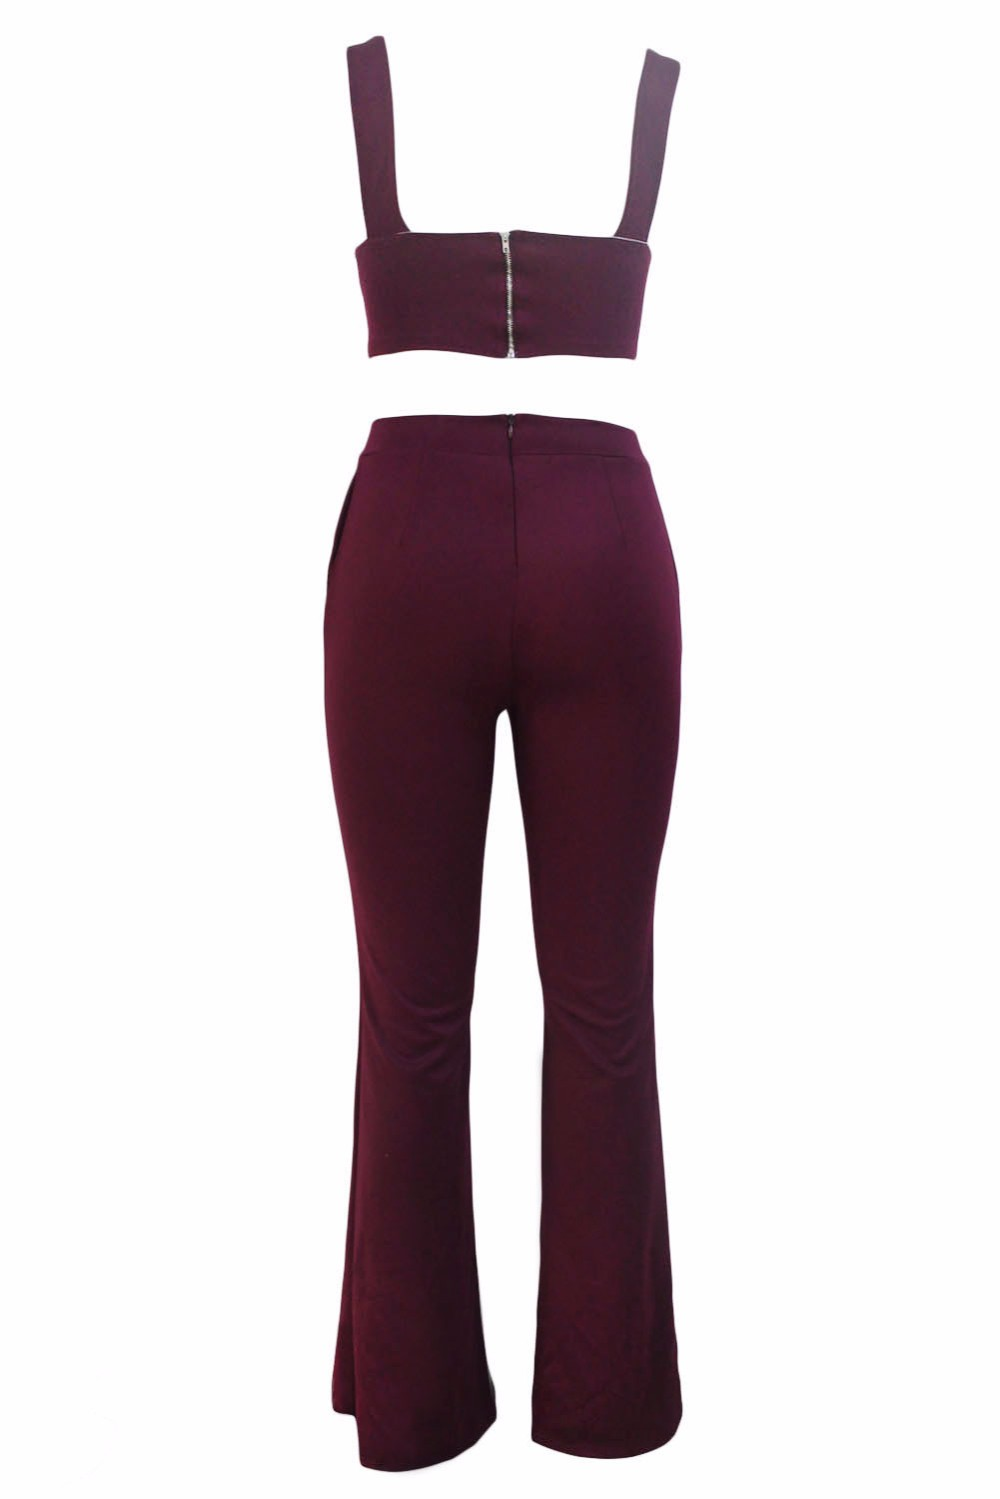 Burgundy-Cross-Front-Crop-Top-and-Pocket-Pant-Set-LC62005-3-42964